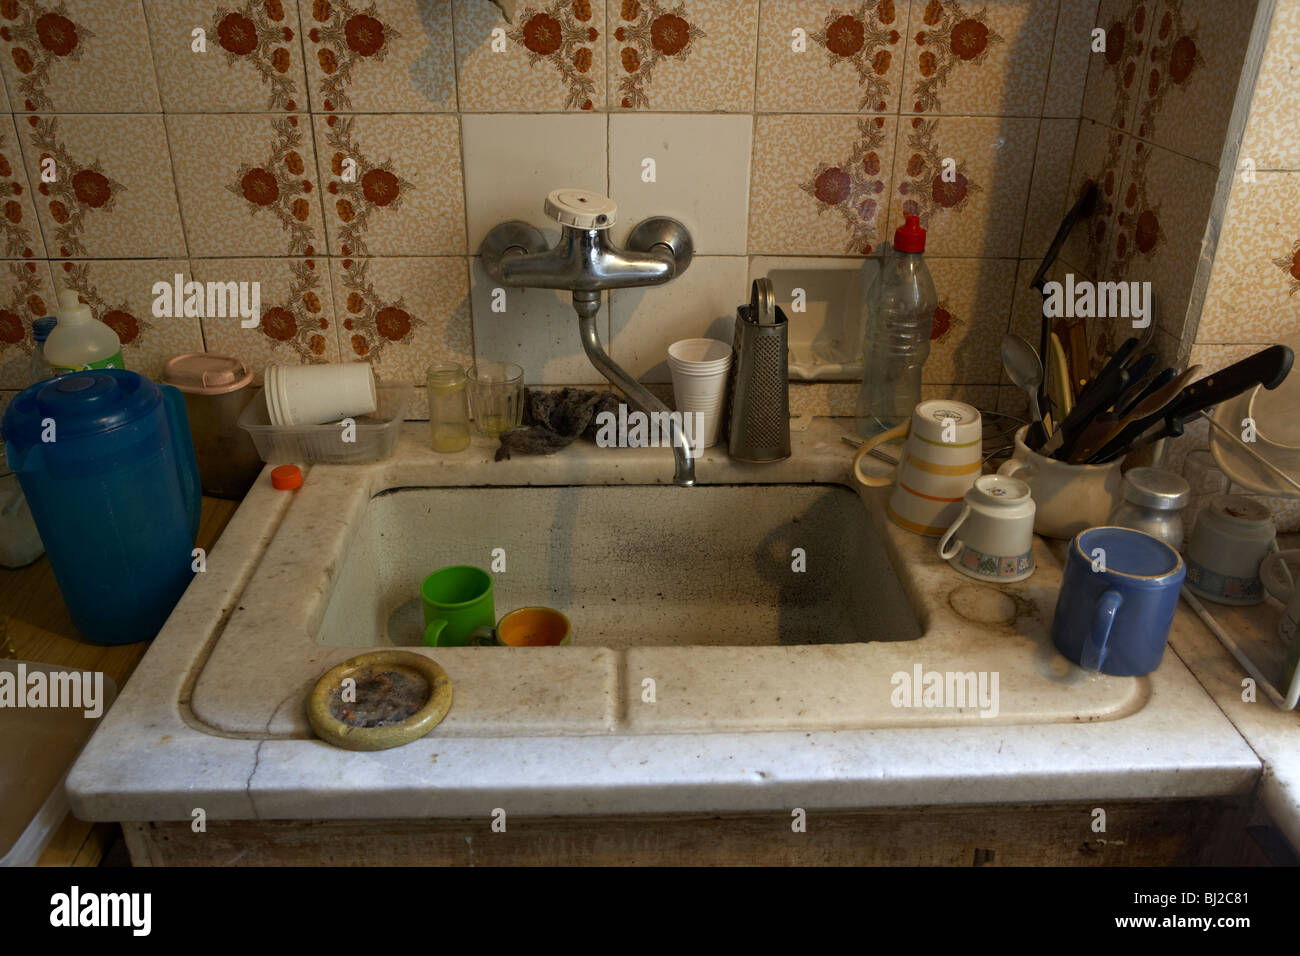 old crowded kitchen sink in a dirty run down kitchen in south ...